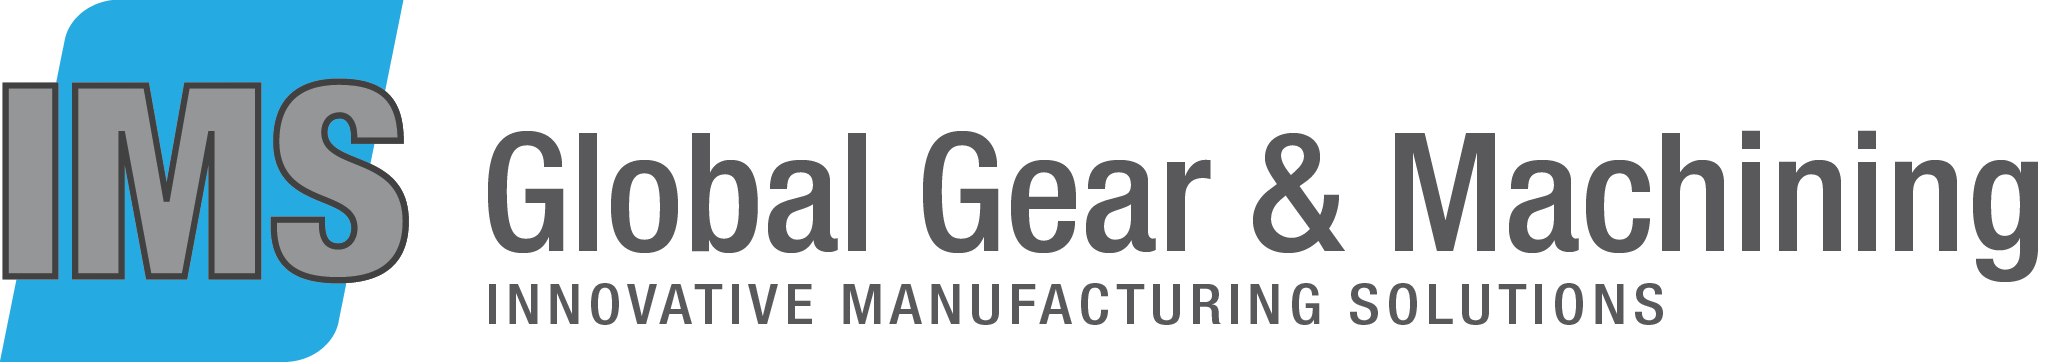 IMS Global Gear & Machining | Downers Grove, IL